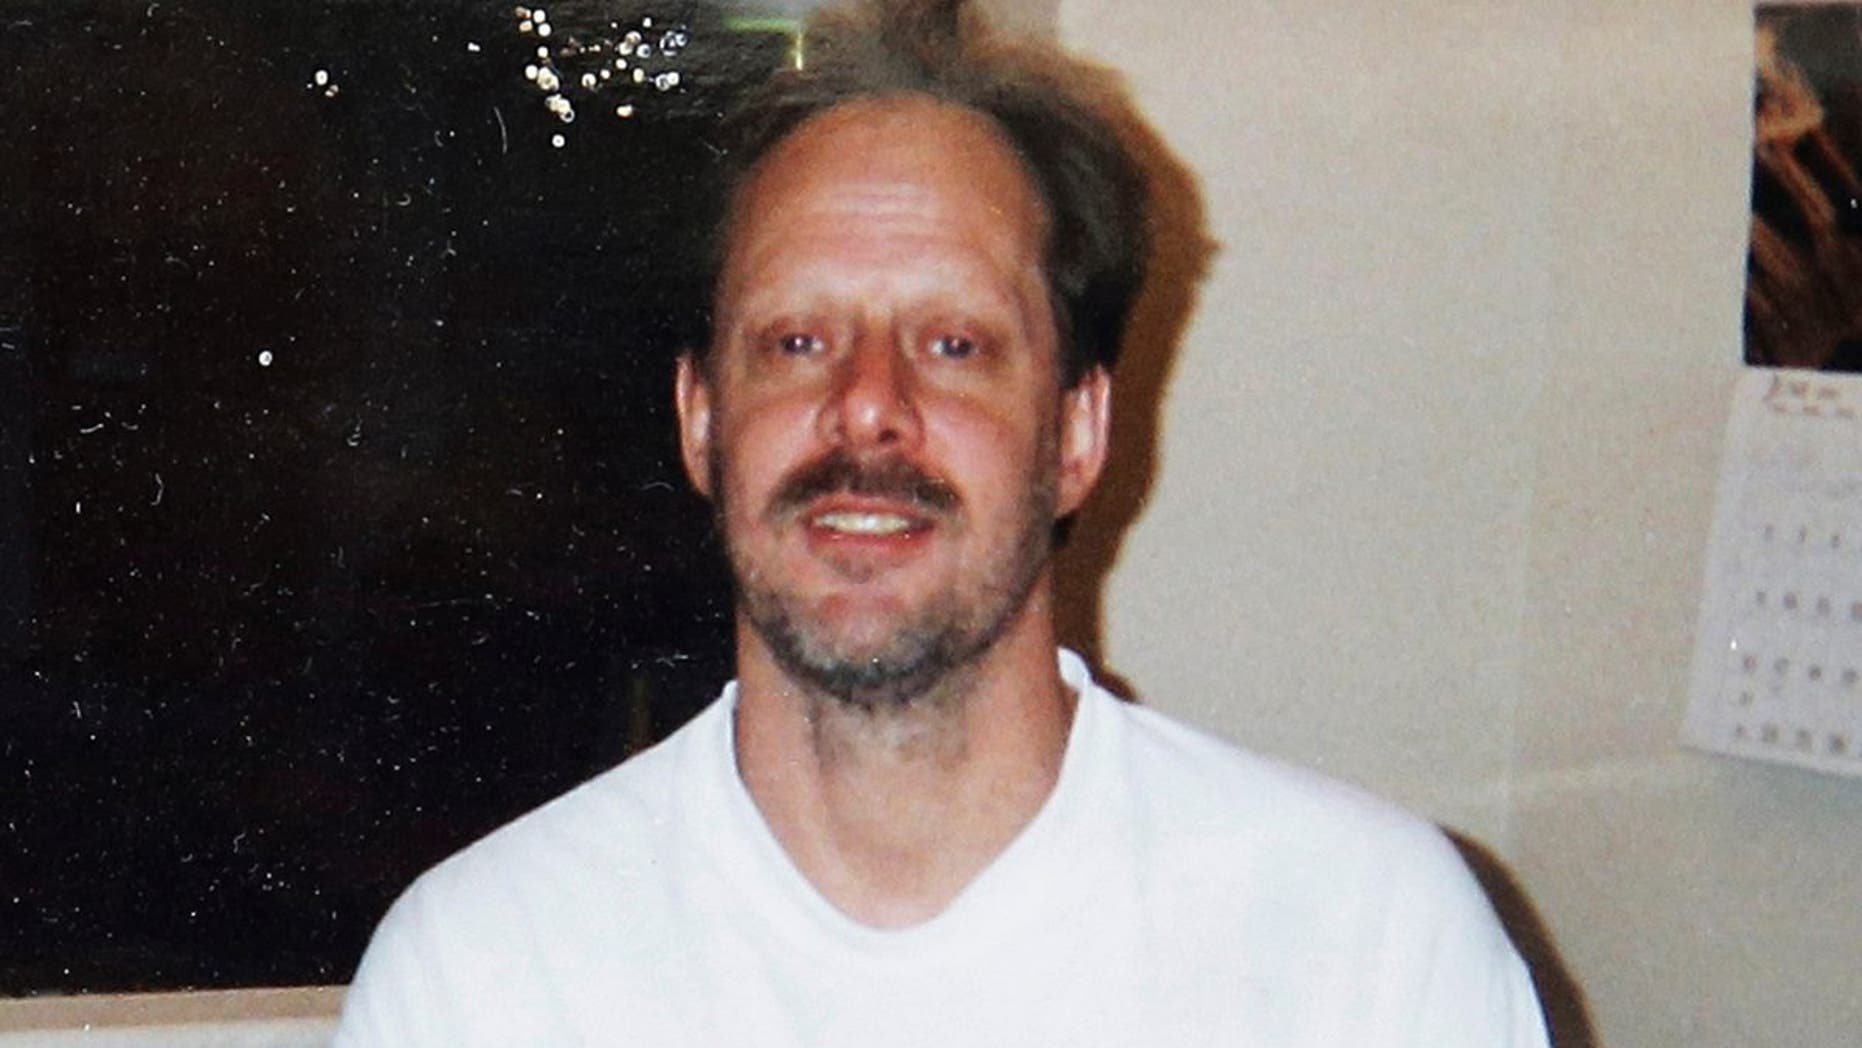 Stephen Paddock opened fire at a Las Vegas music festival, killing 58 people.